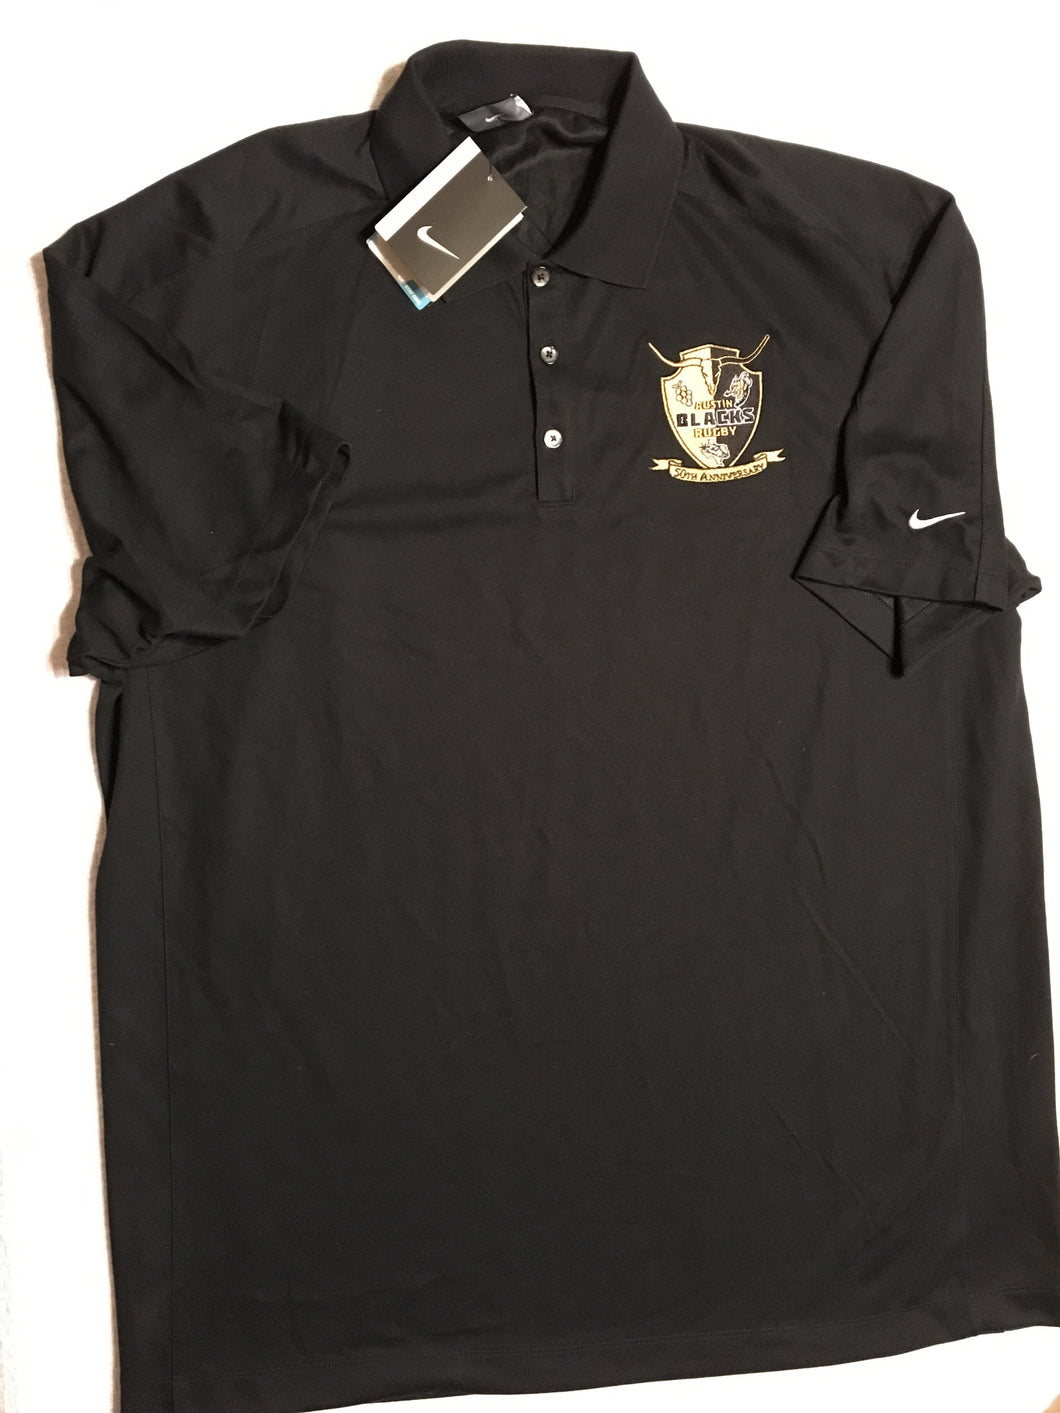 Black Nike 50th Anniversary Polo